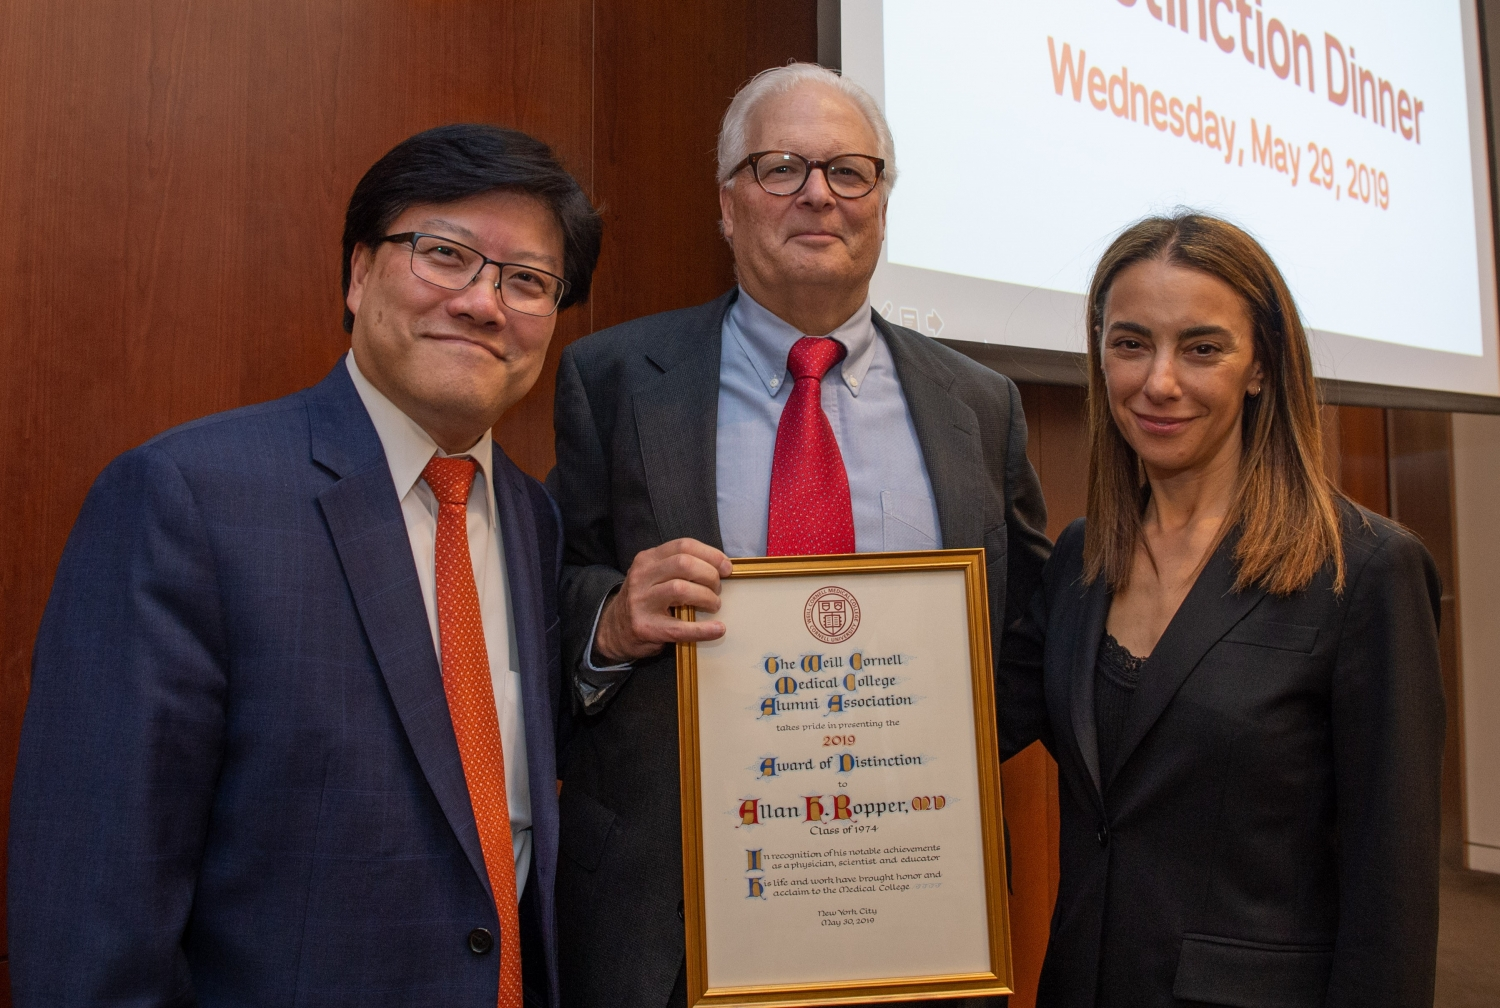 Dr. Allan Ropper Wins Weill Cornell Medical College Alumni Award